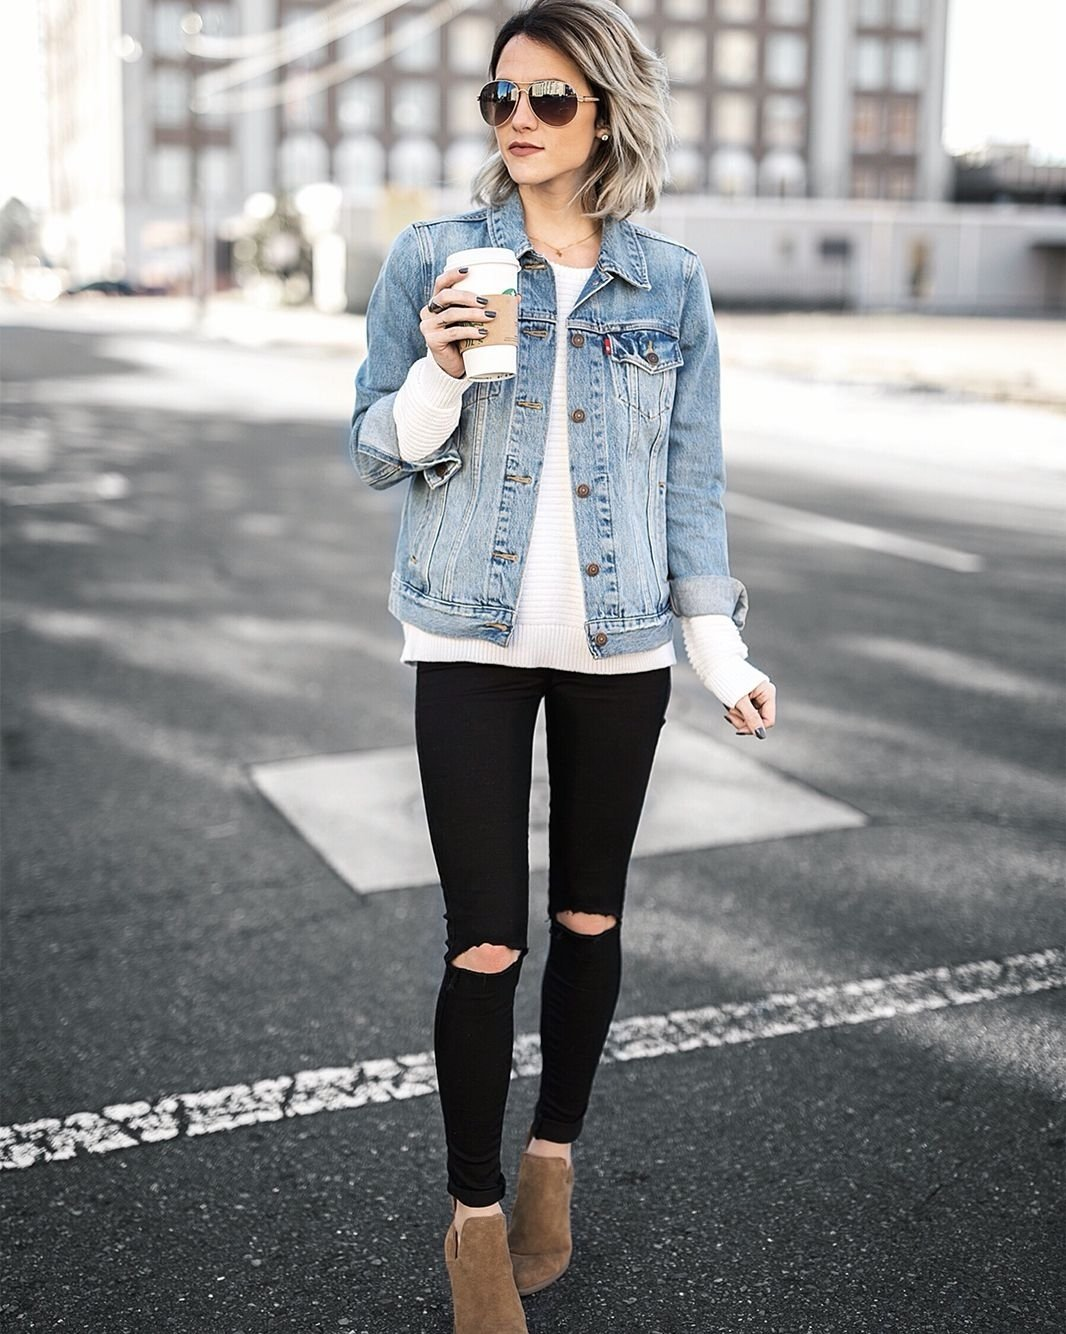 10 Cute Cute Outfit Ideas With Jeans jo kemp womens fashion street style ootd fashion style 2020